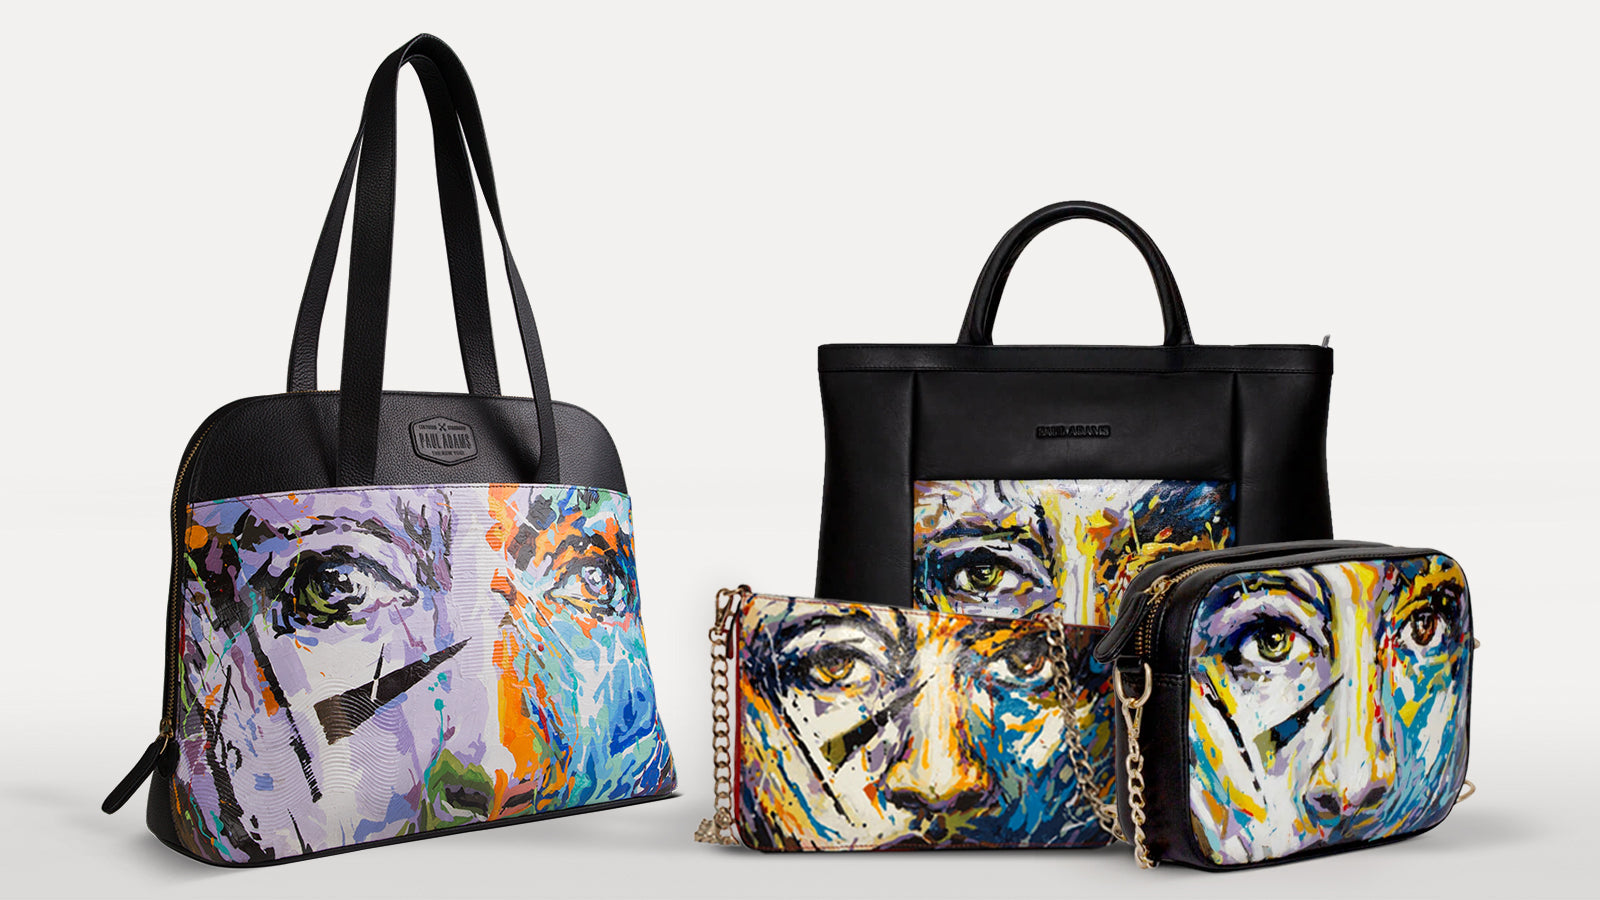 The Laura Collection: Handpainted Luxury Bags. Sling Bags, Handbags, Document Cases and Office Bags